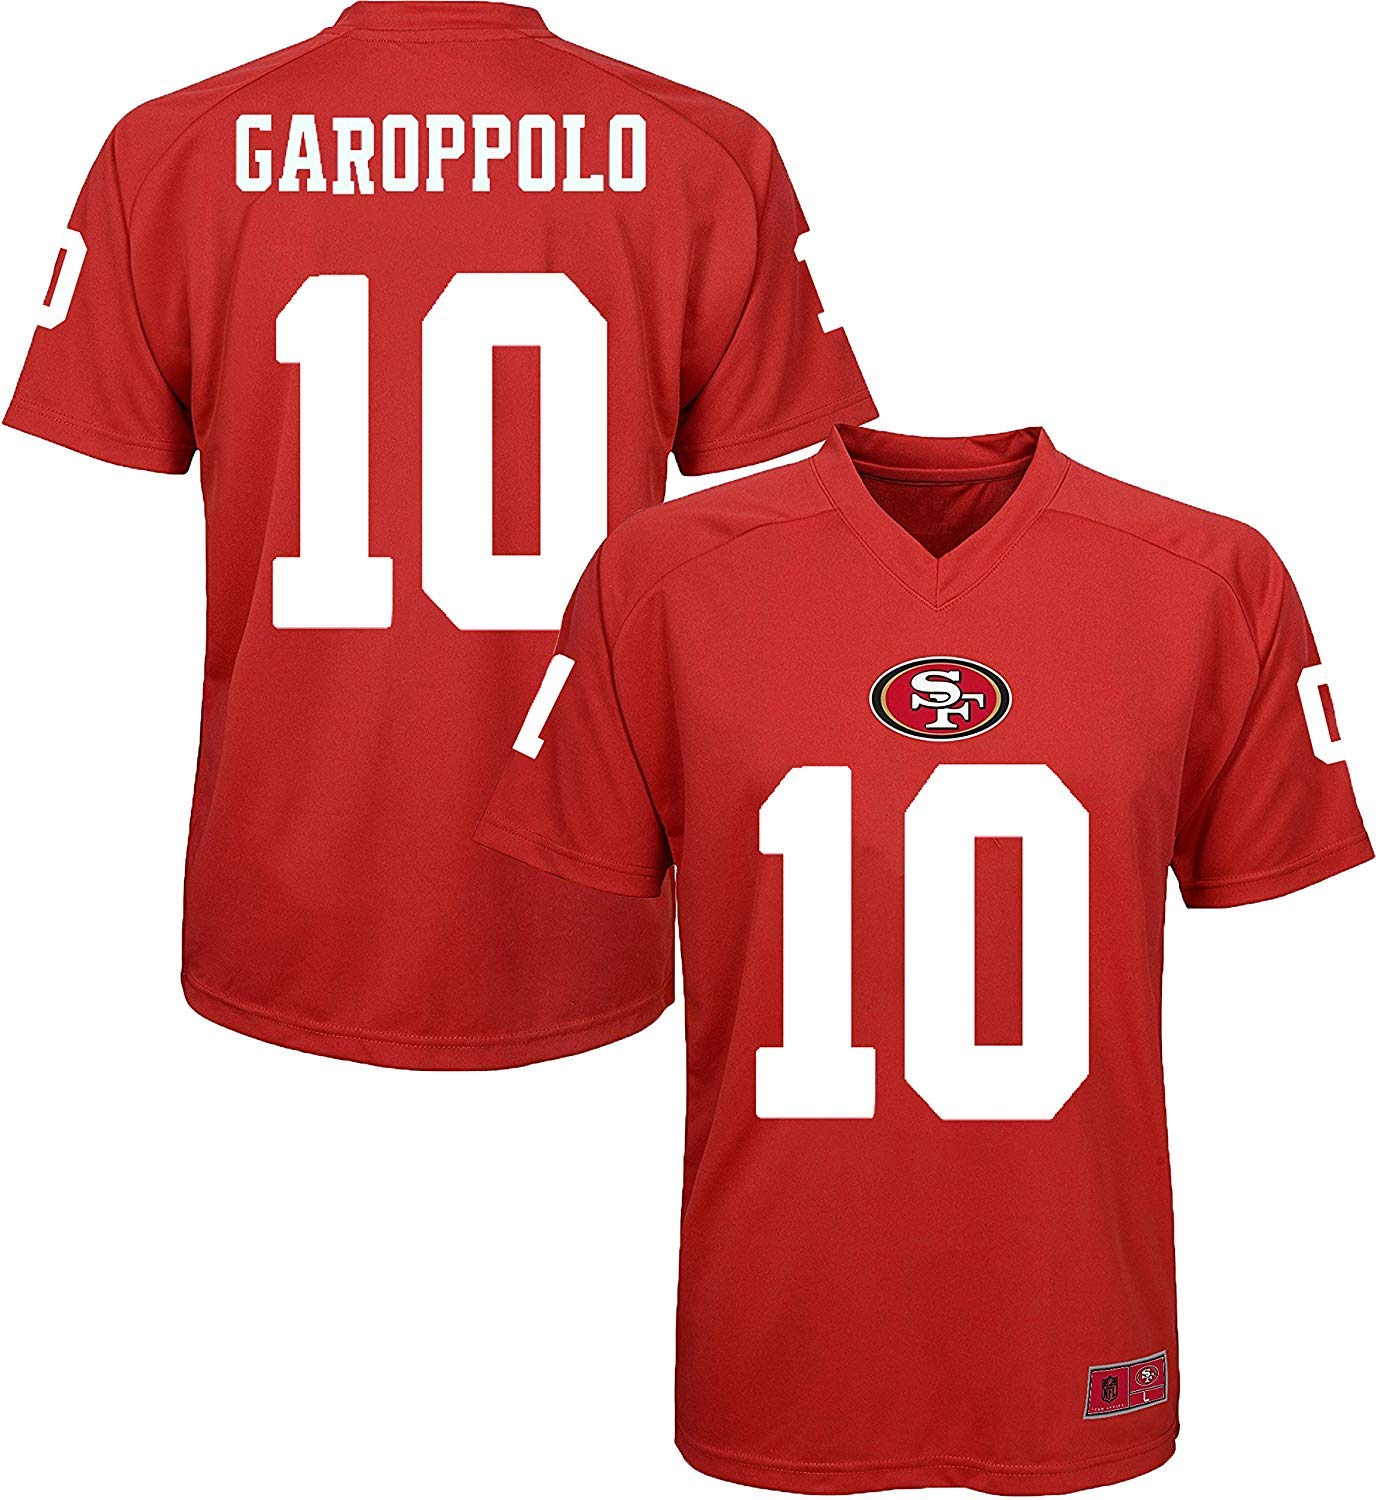 buy online 09e58 39cca Amazon.com : Outerstuff Jimmy Garoppolo San Francisco 49ers ...